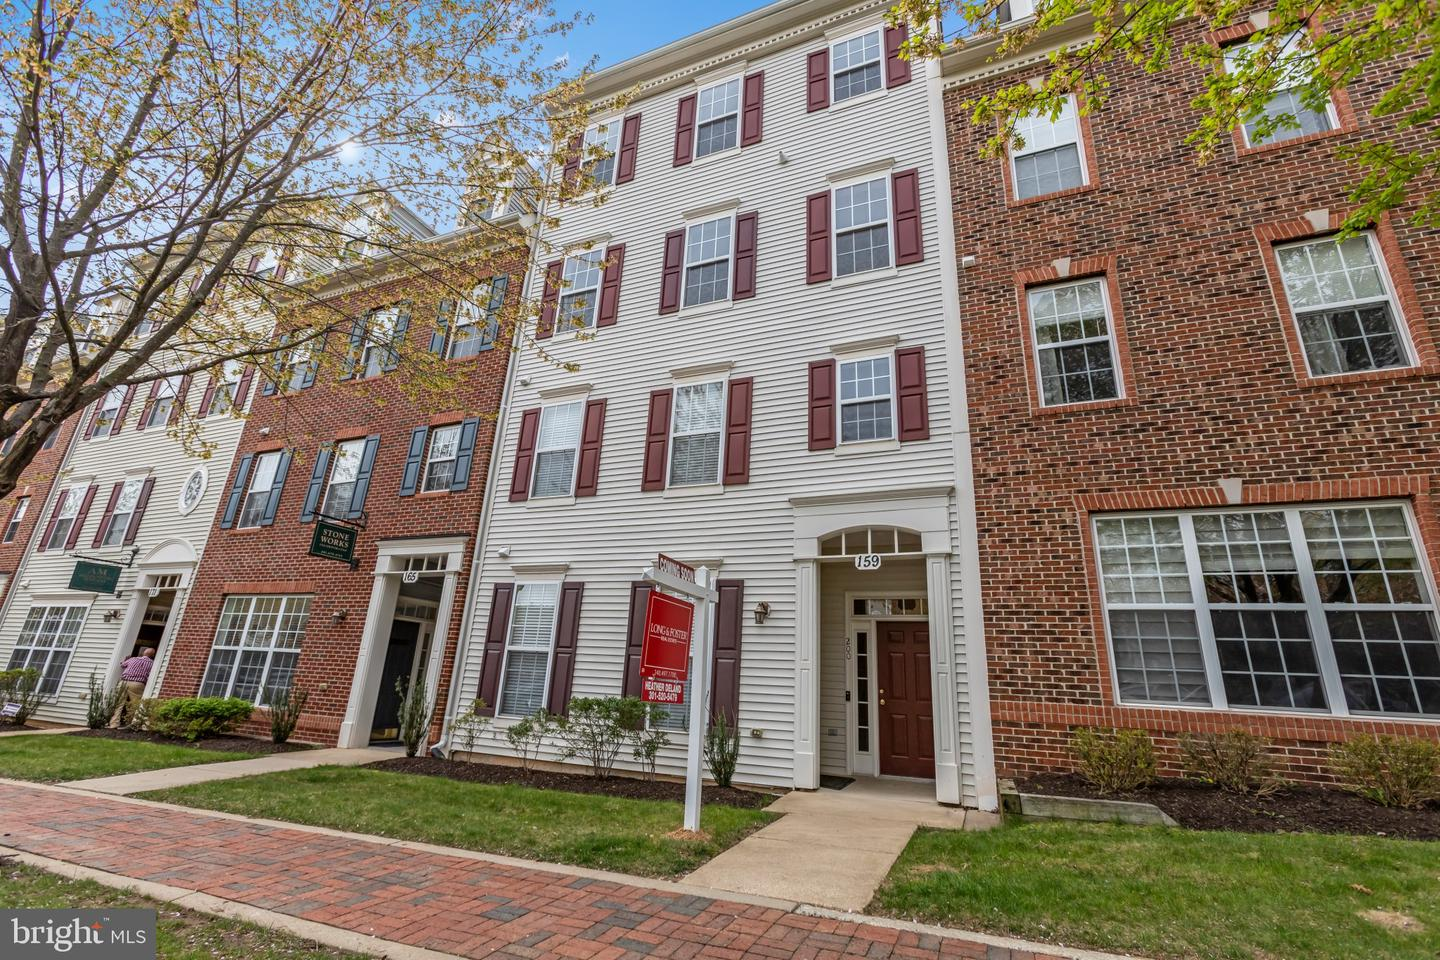 159 MILL GREEN AVE #200, GAITHERSBURG, Maryland 20878, 3 Bedrooms Bedrooms, ,3 BathroomsBathrooms,Common Interest,For Sale,159 MILL GREEN AVE #200,MDMC753954